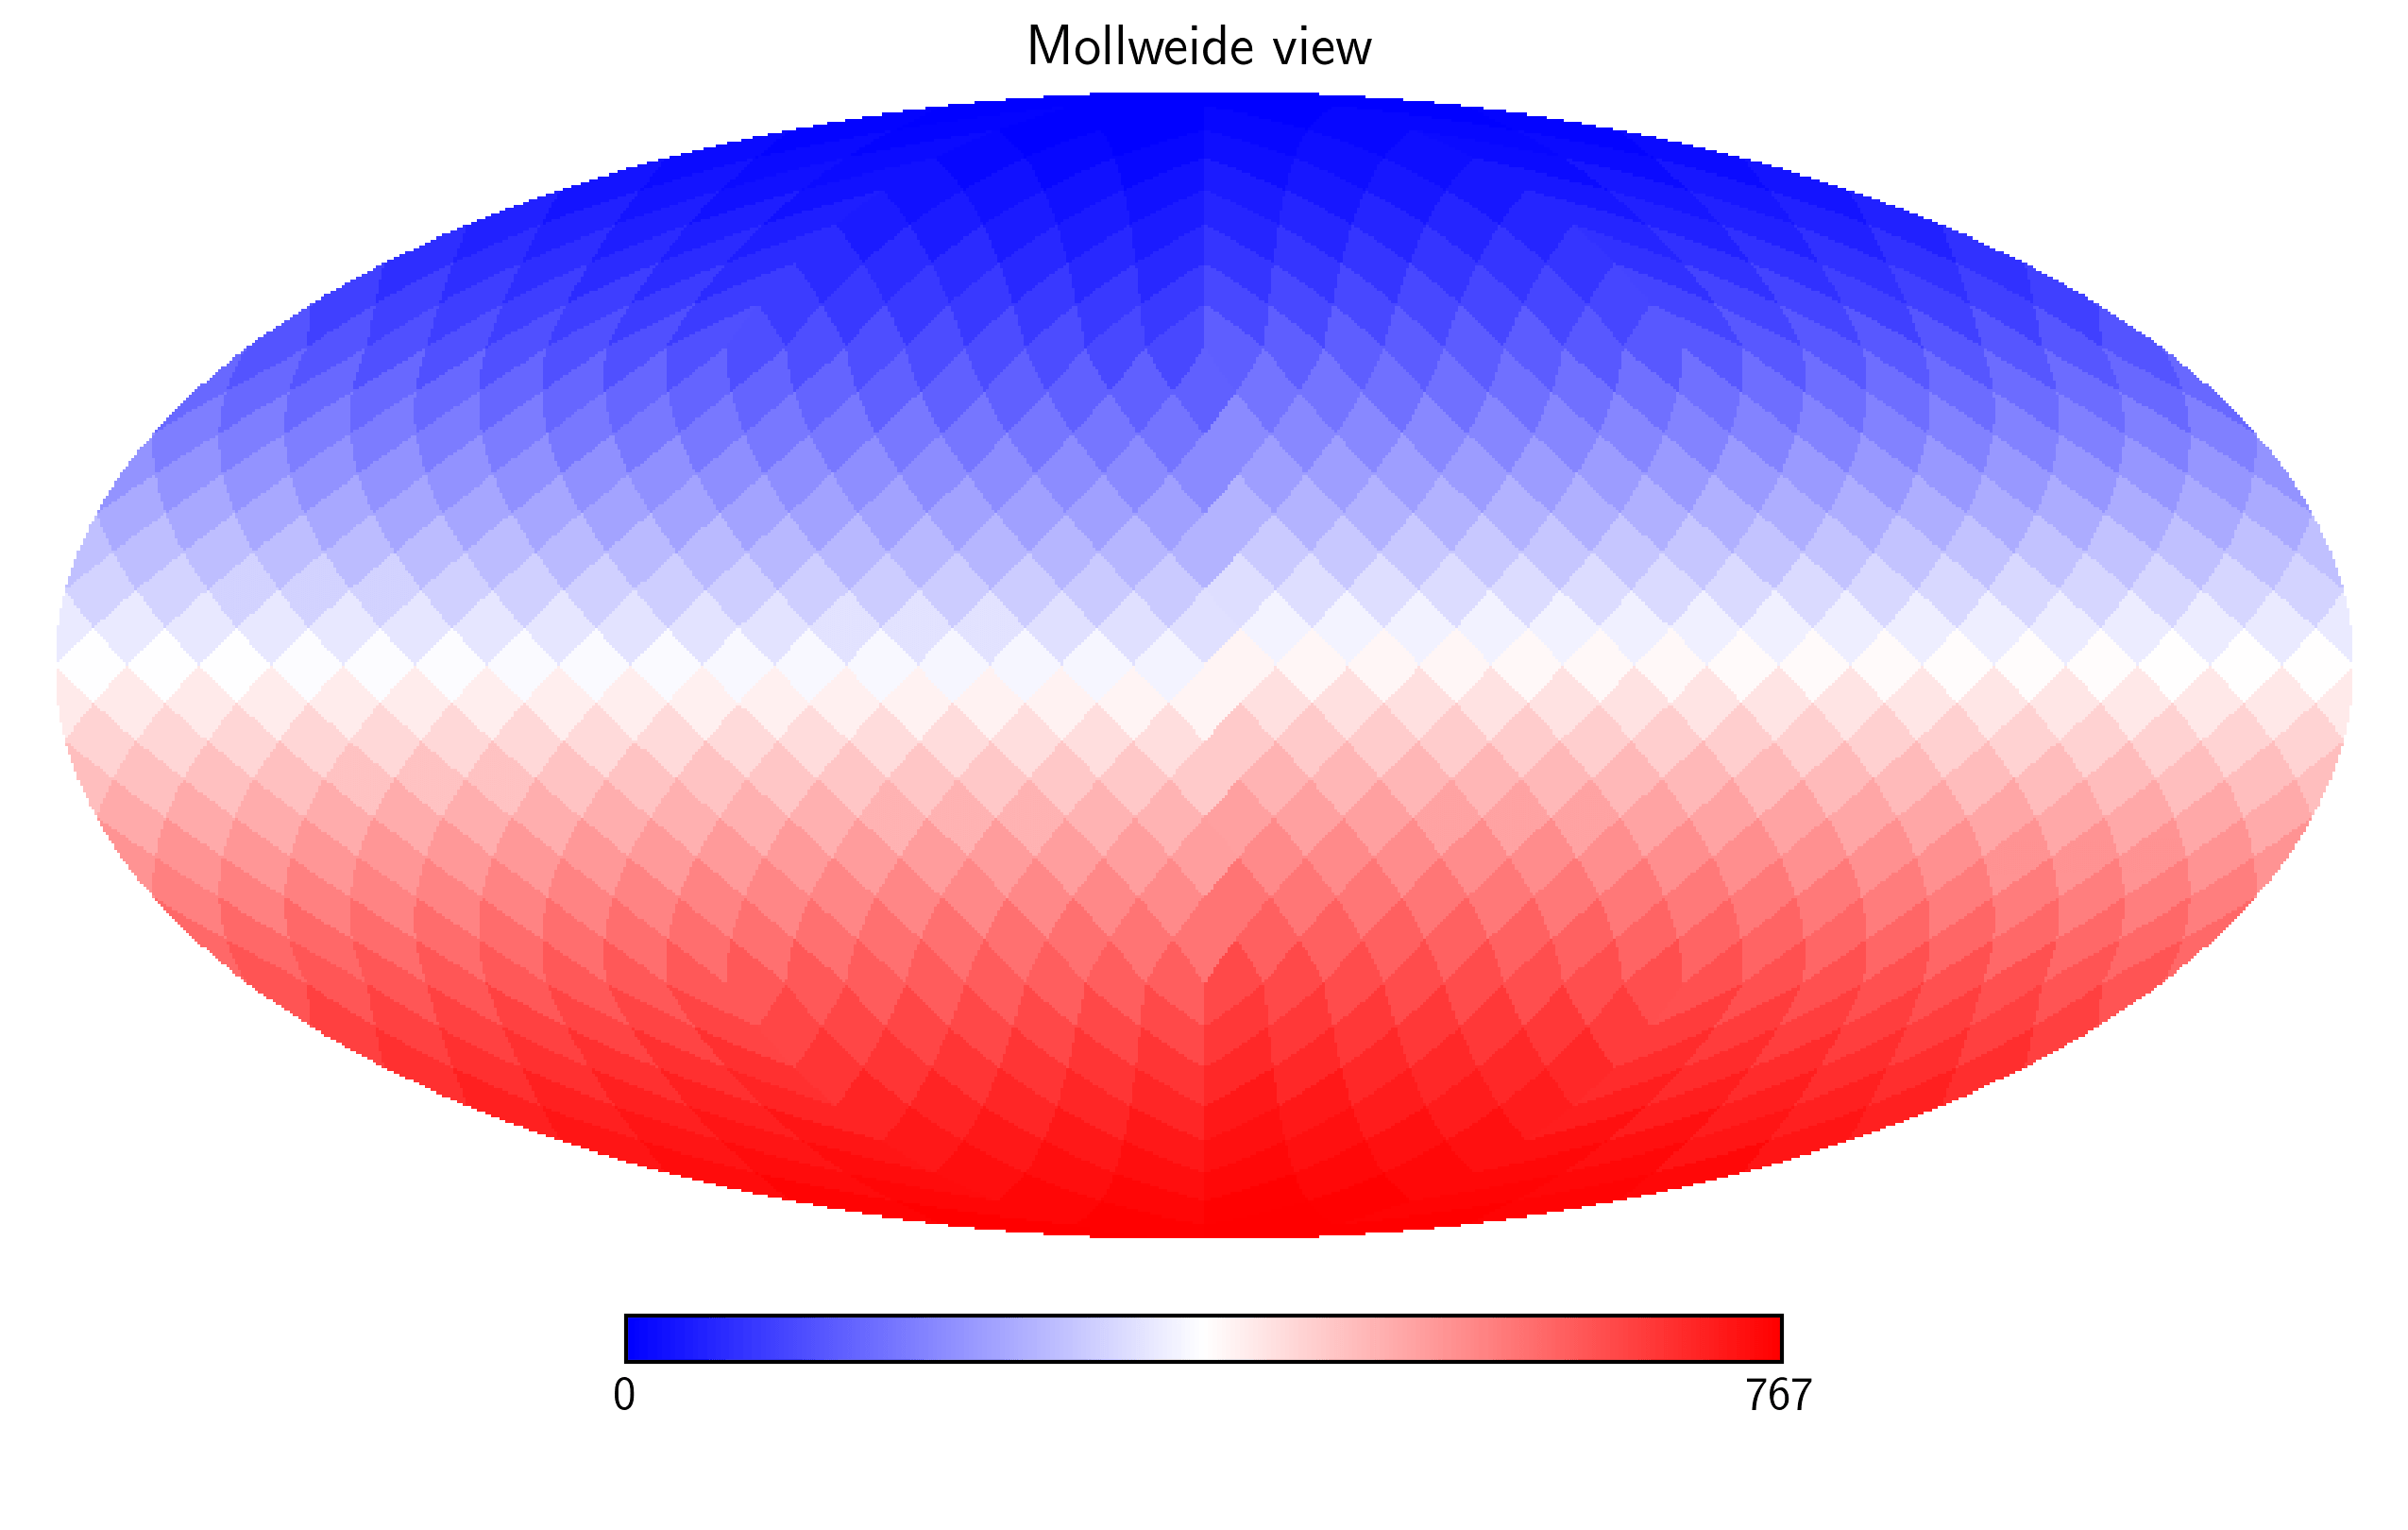 Set_bad Cmap Healpy Mollview Use Matplotlib Colormaps And Change